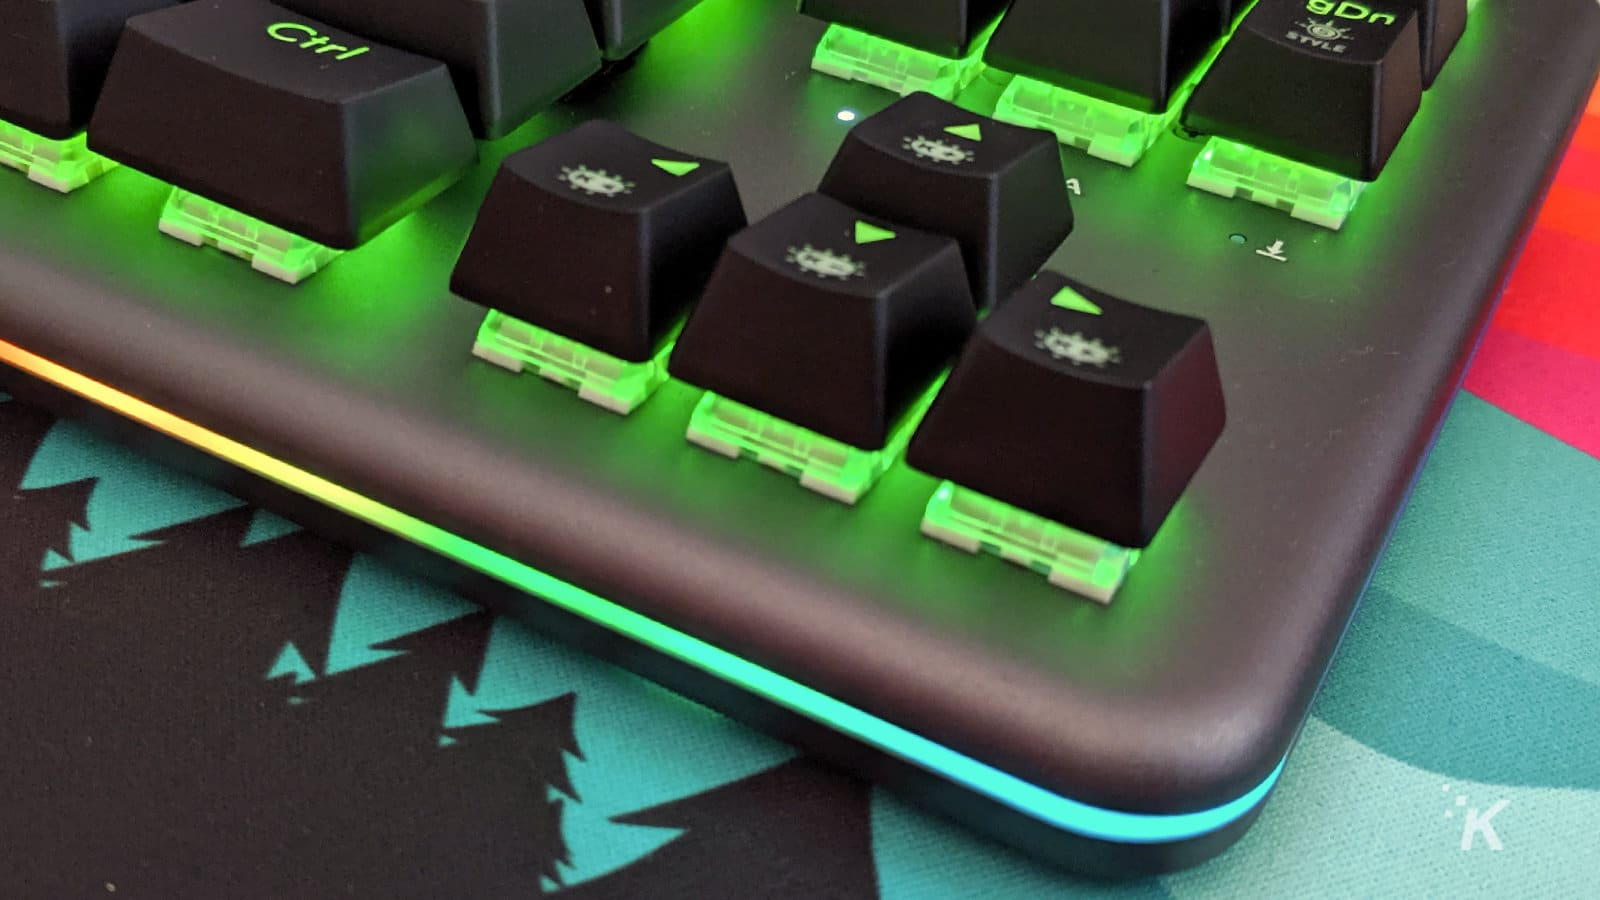 hexgears nova keyboard zoomed in